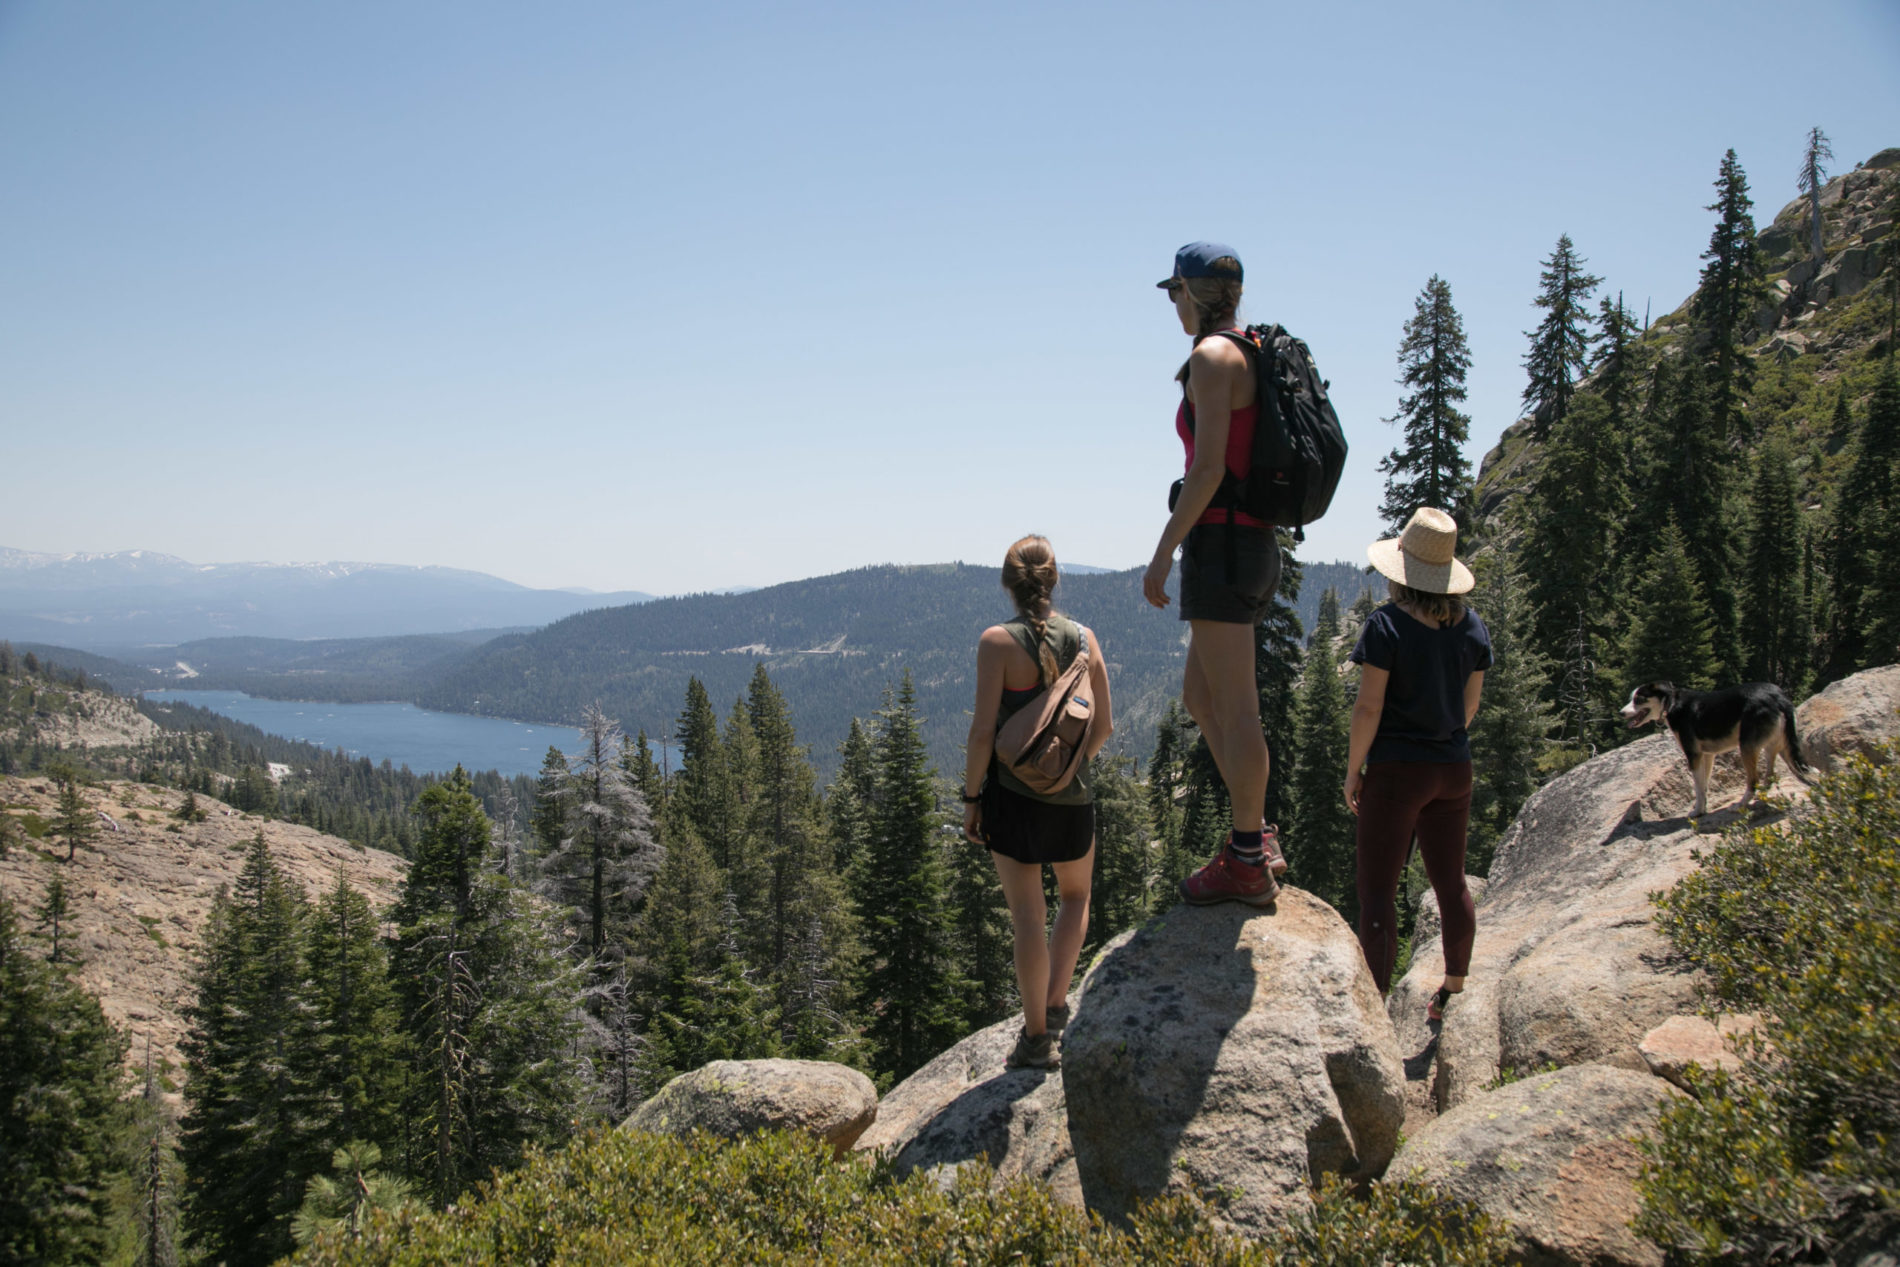 3 women overlooking lake at the top of a mountain